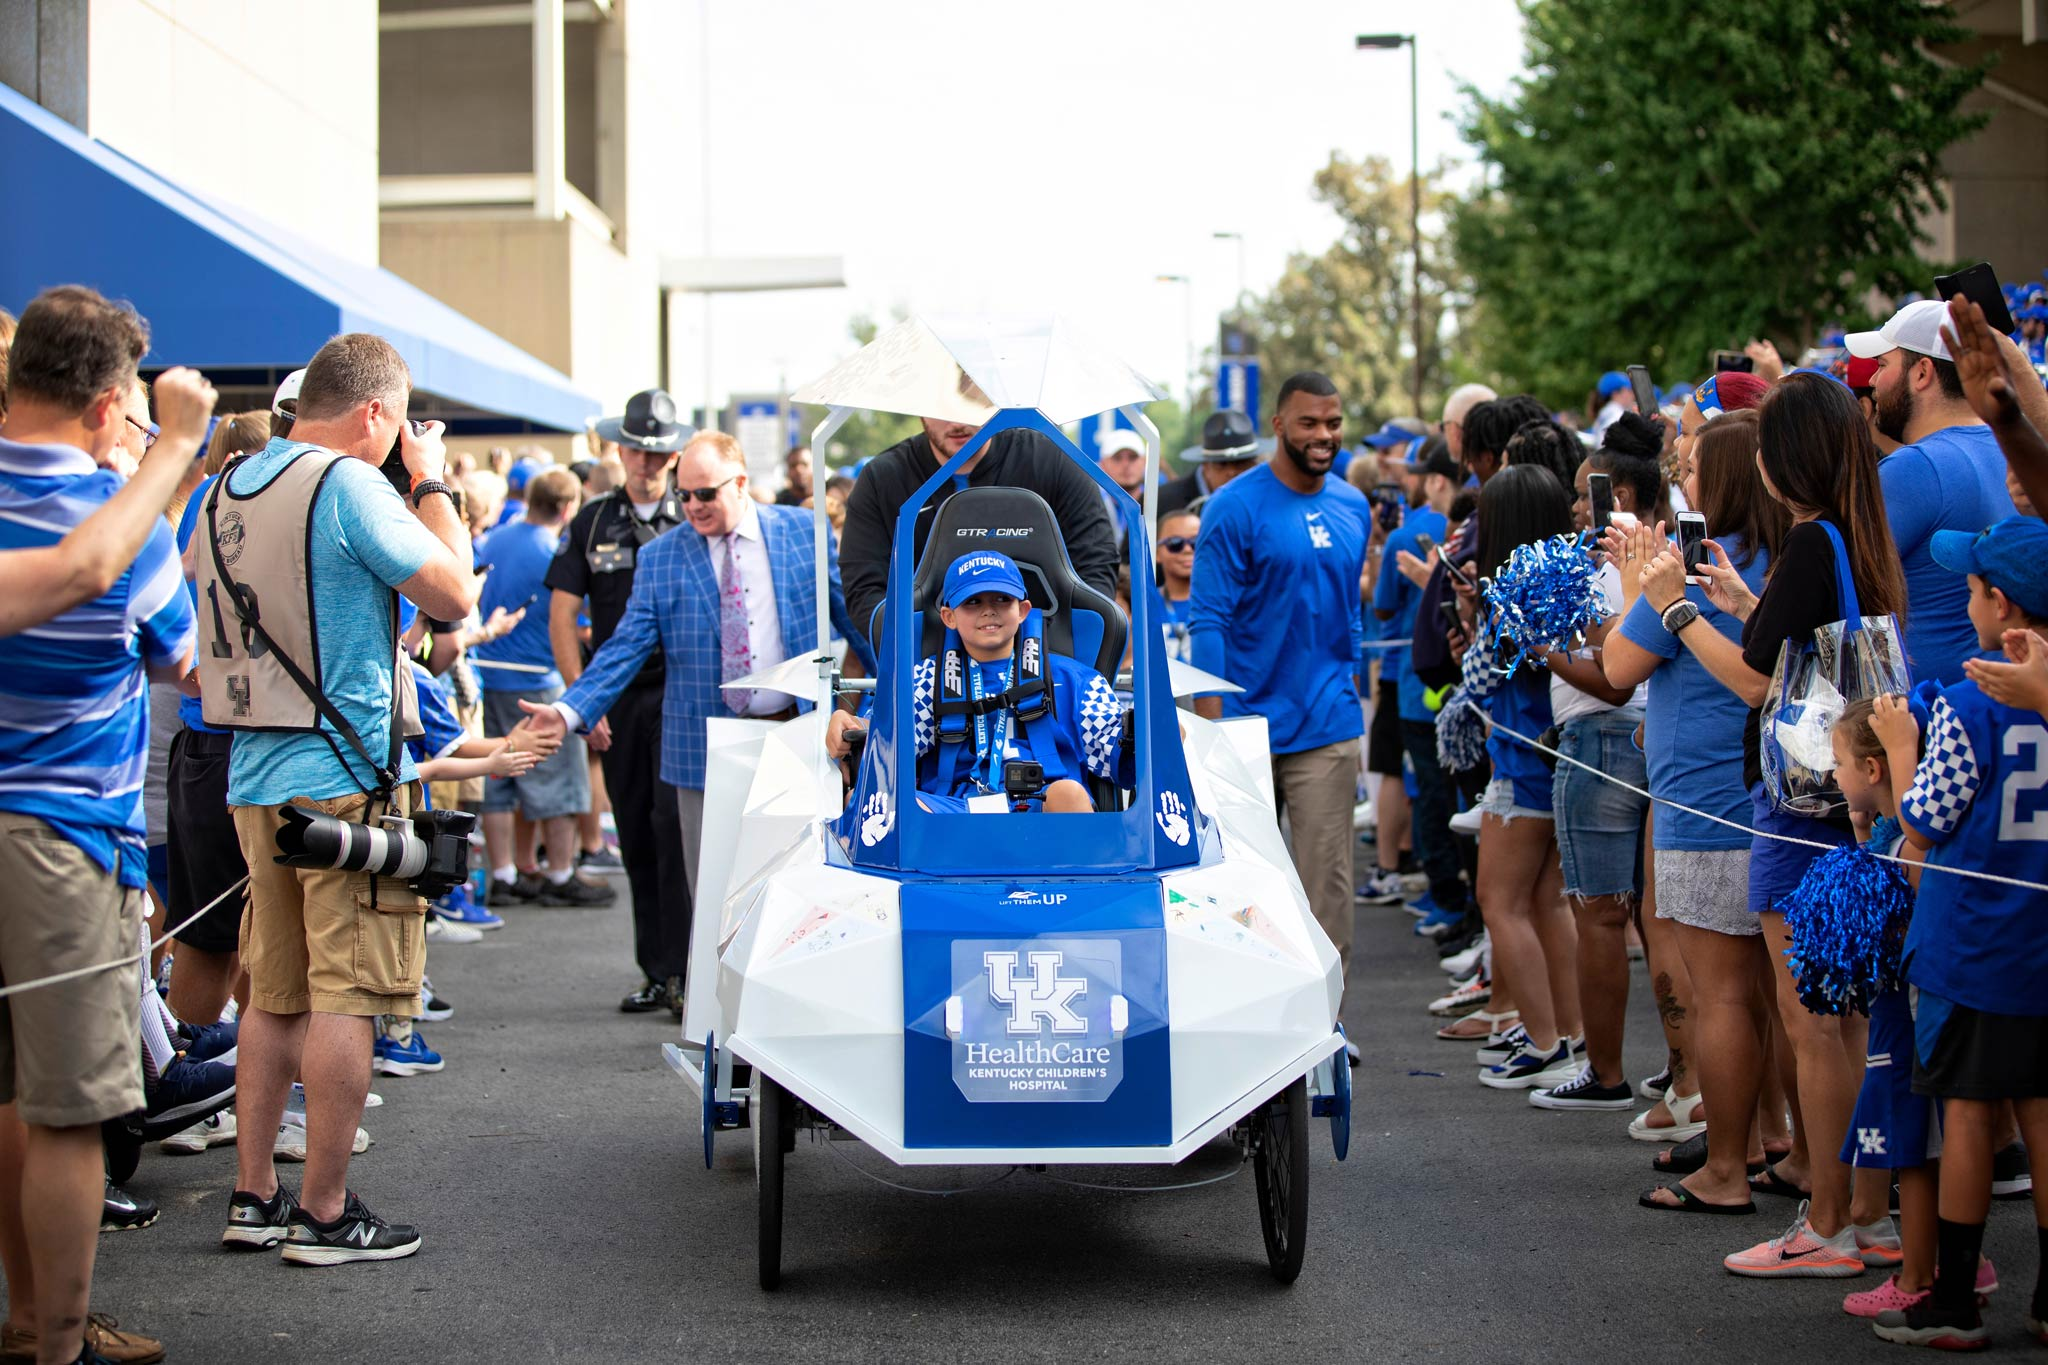 A little boy, riding in a futuristic-looking cart, leads Coach Stoops, Courtney Love, and the football team through a crowd of fans.